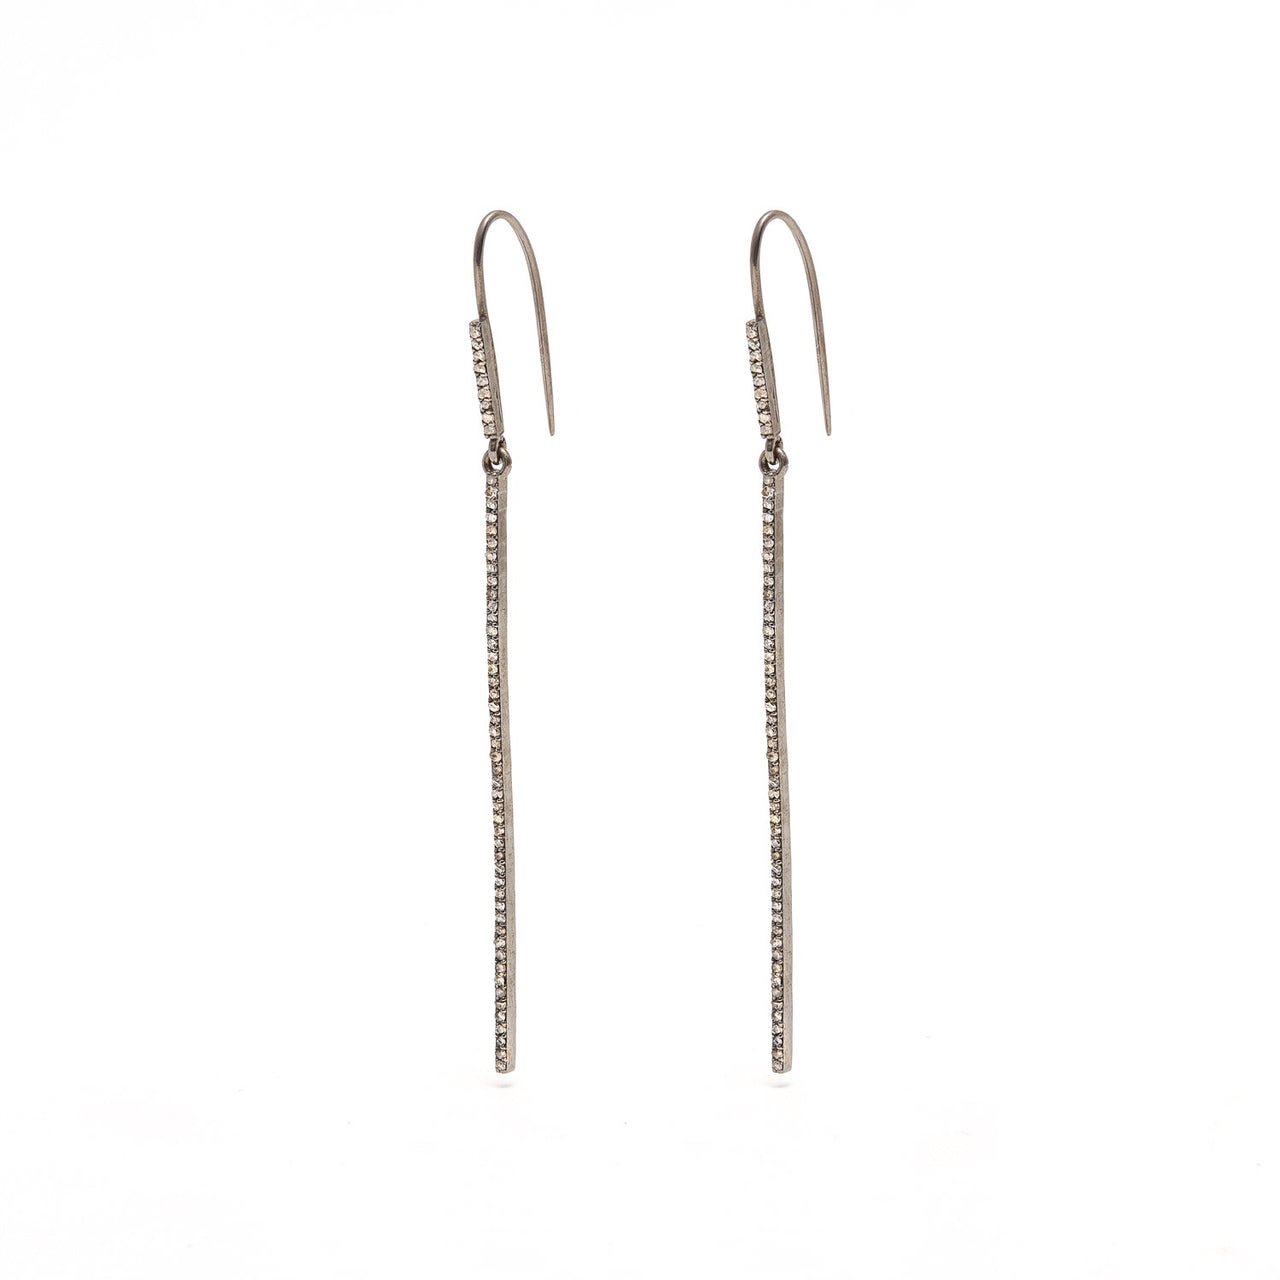 Jaipur Atelier Diamond Toothpick Earrings